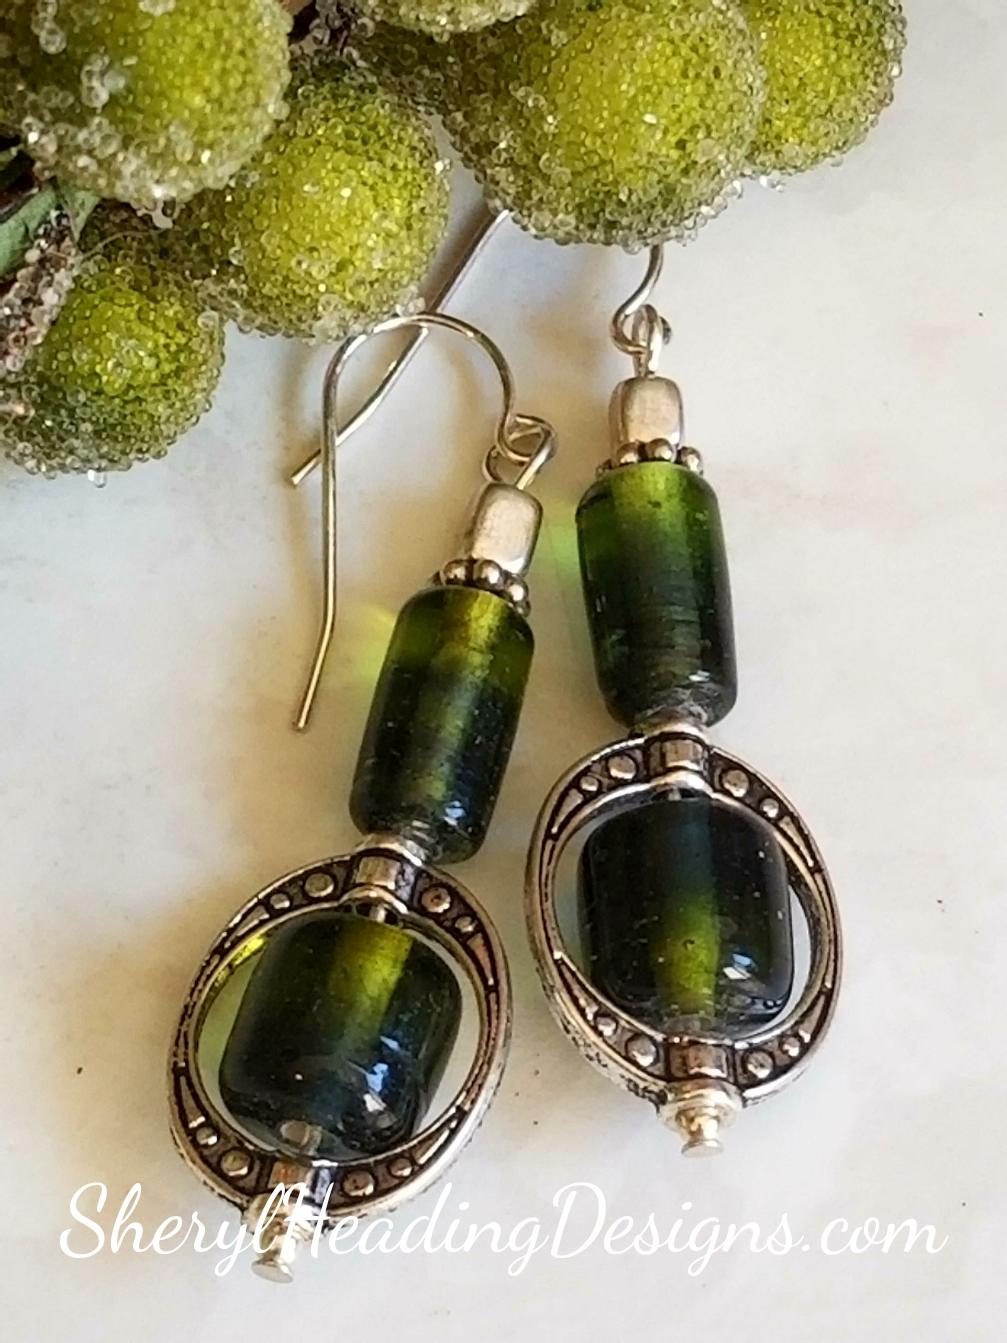 Sweet Silver and Green Dangle Earrings - Sheryl Heading Designs